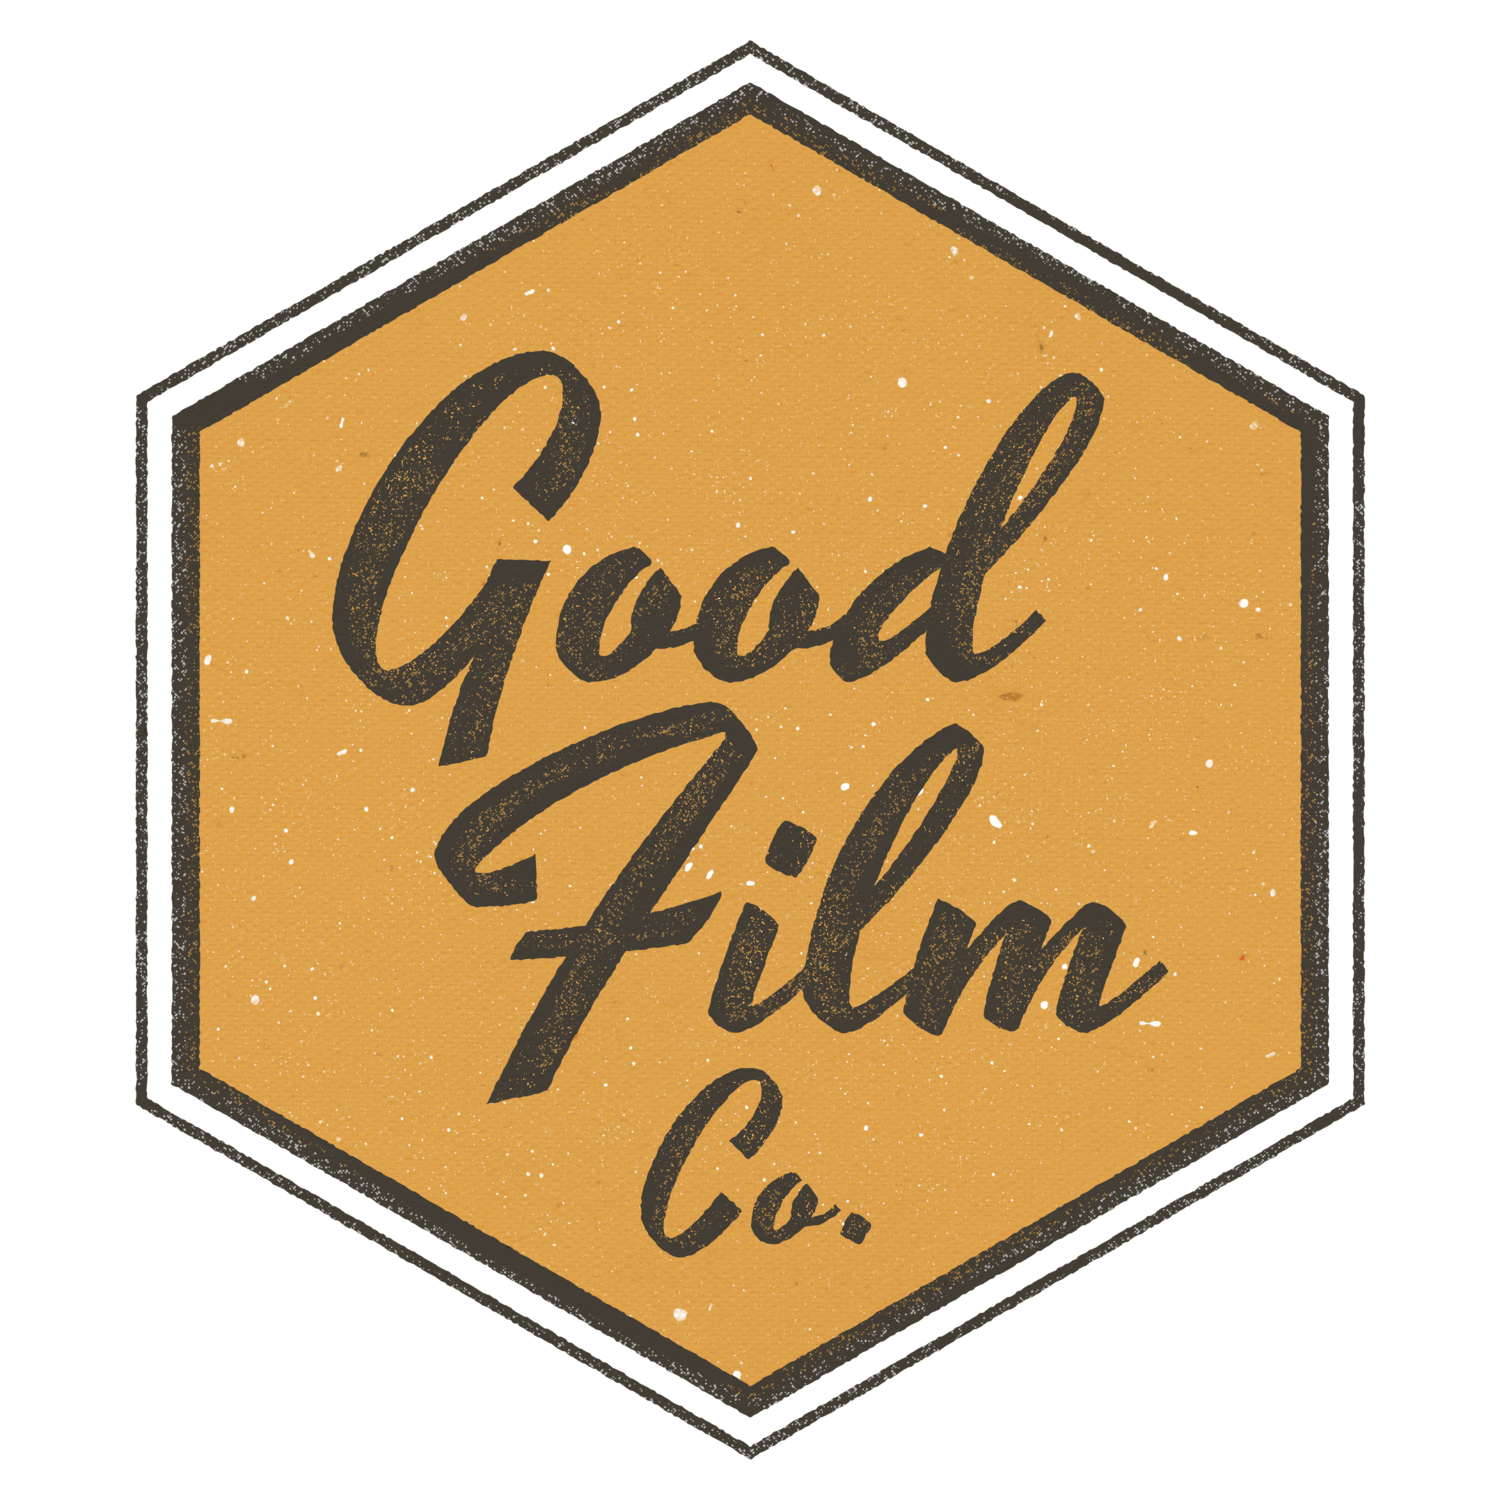 Good Film Co.